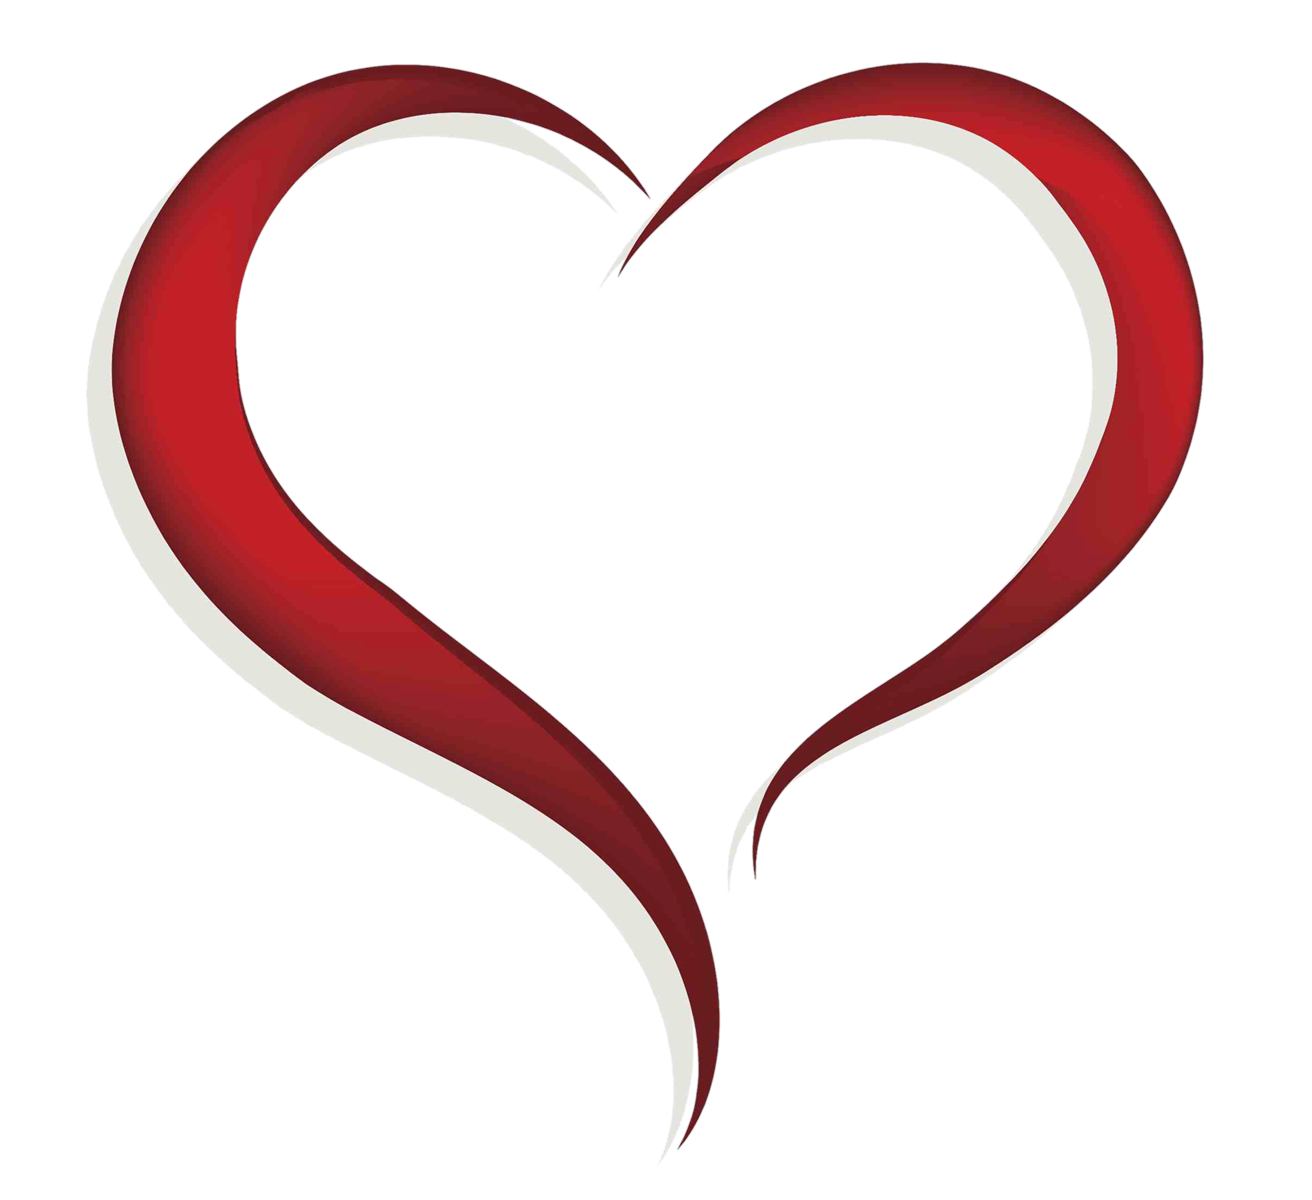 Heart outline clipart free clip library library Heart clipart - Clipground clip library library